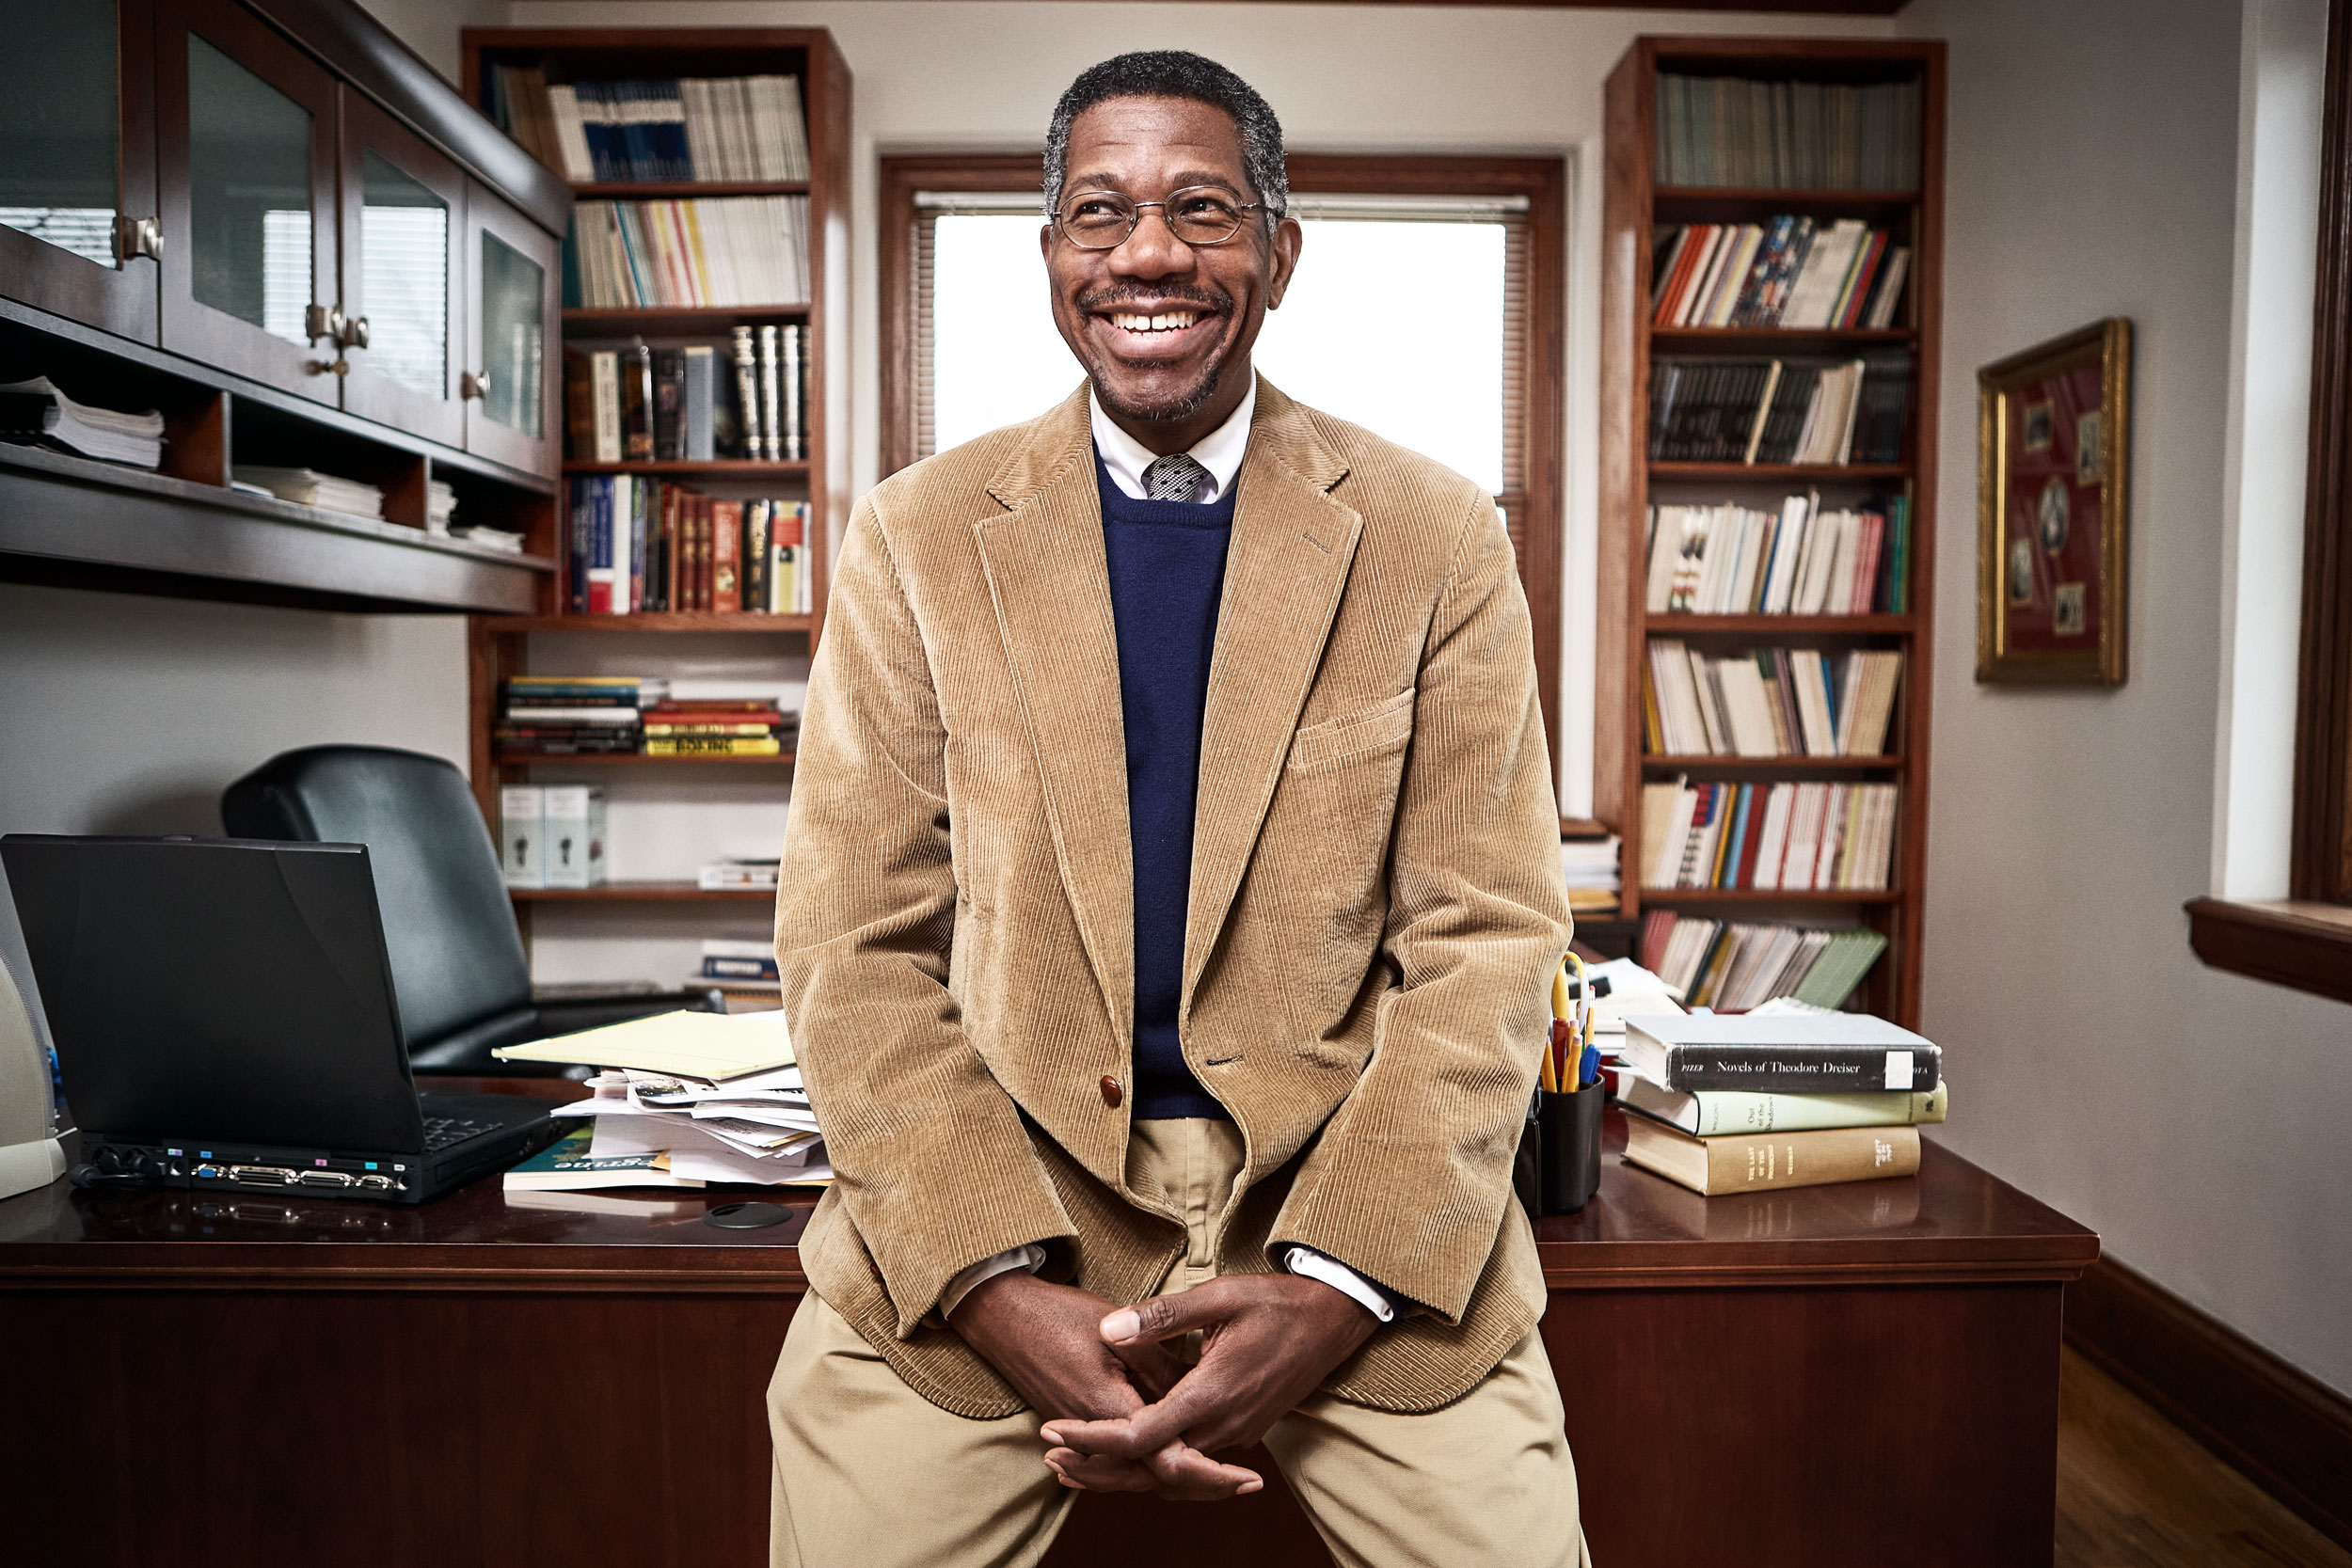 Professor Gerald Early, Chair of African and African-American Studies at Washington University in St. Louis, photographed in his office.